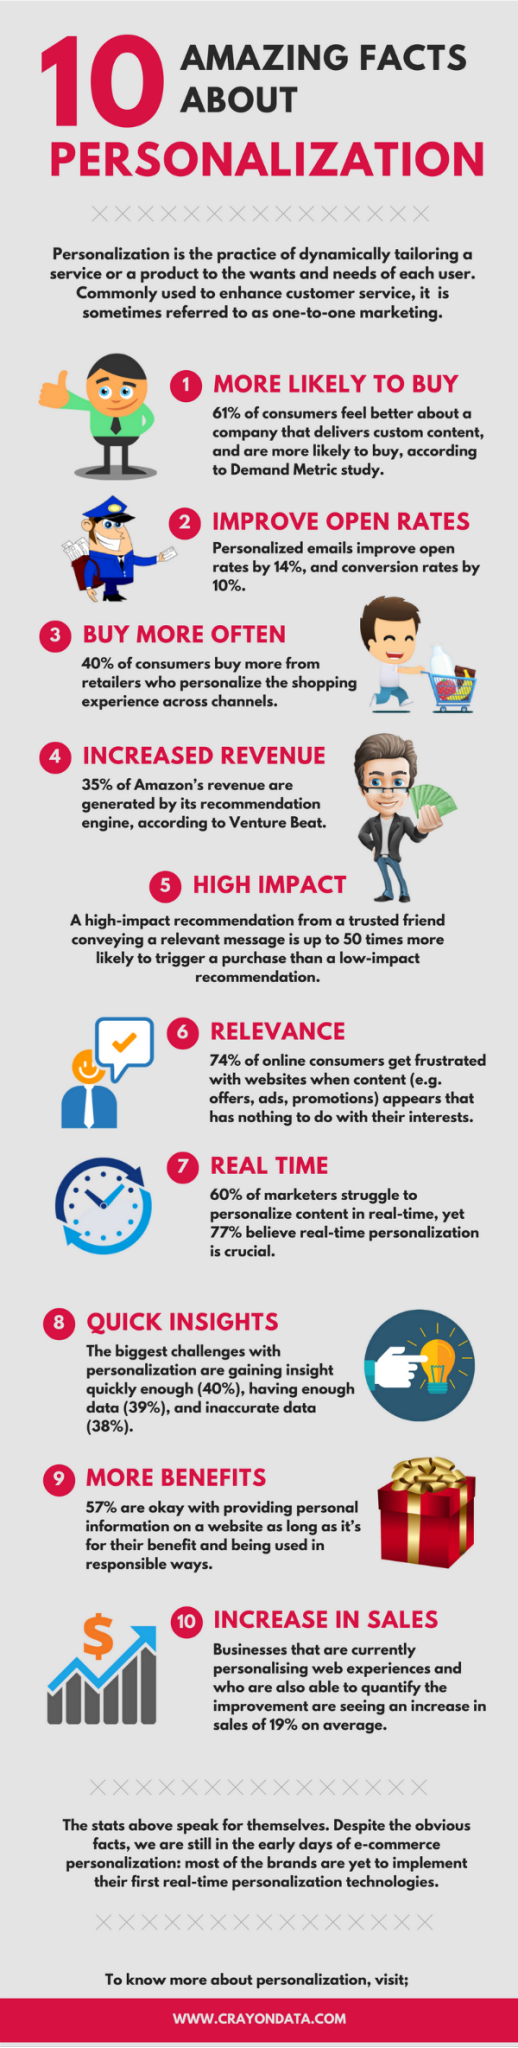 10 amazing facts about personalization